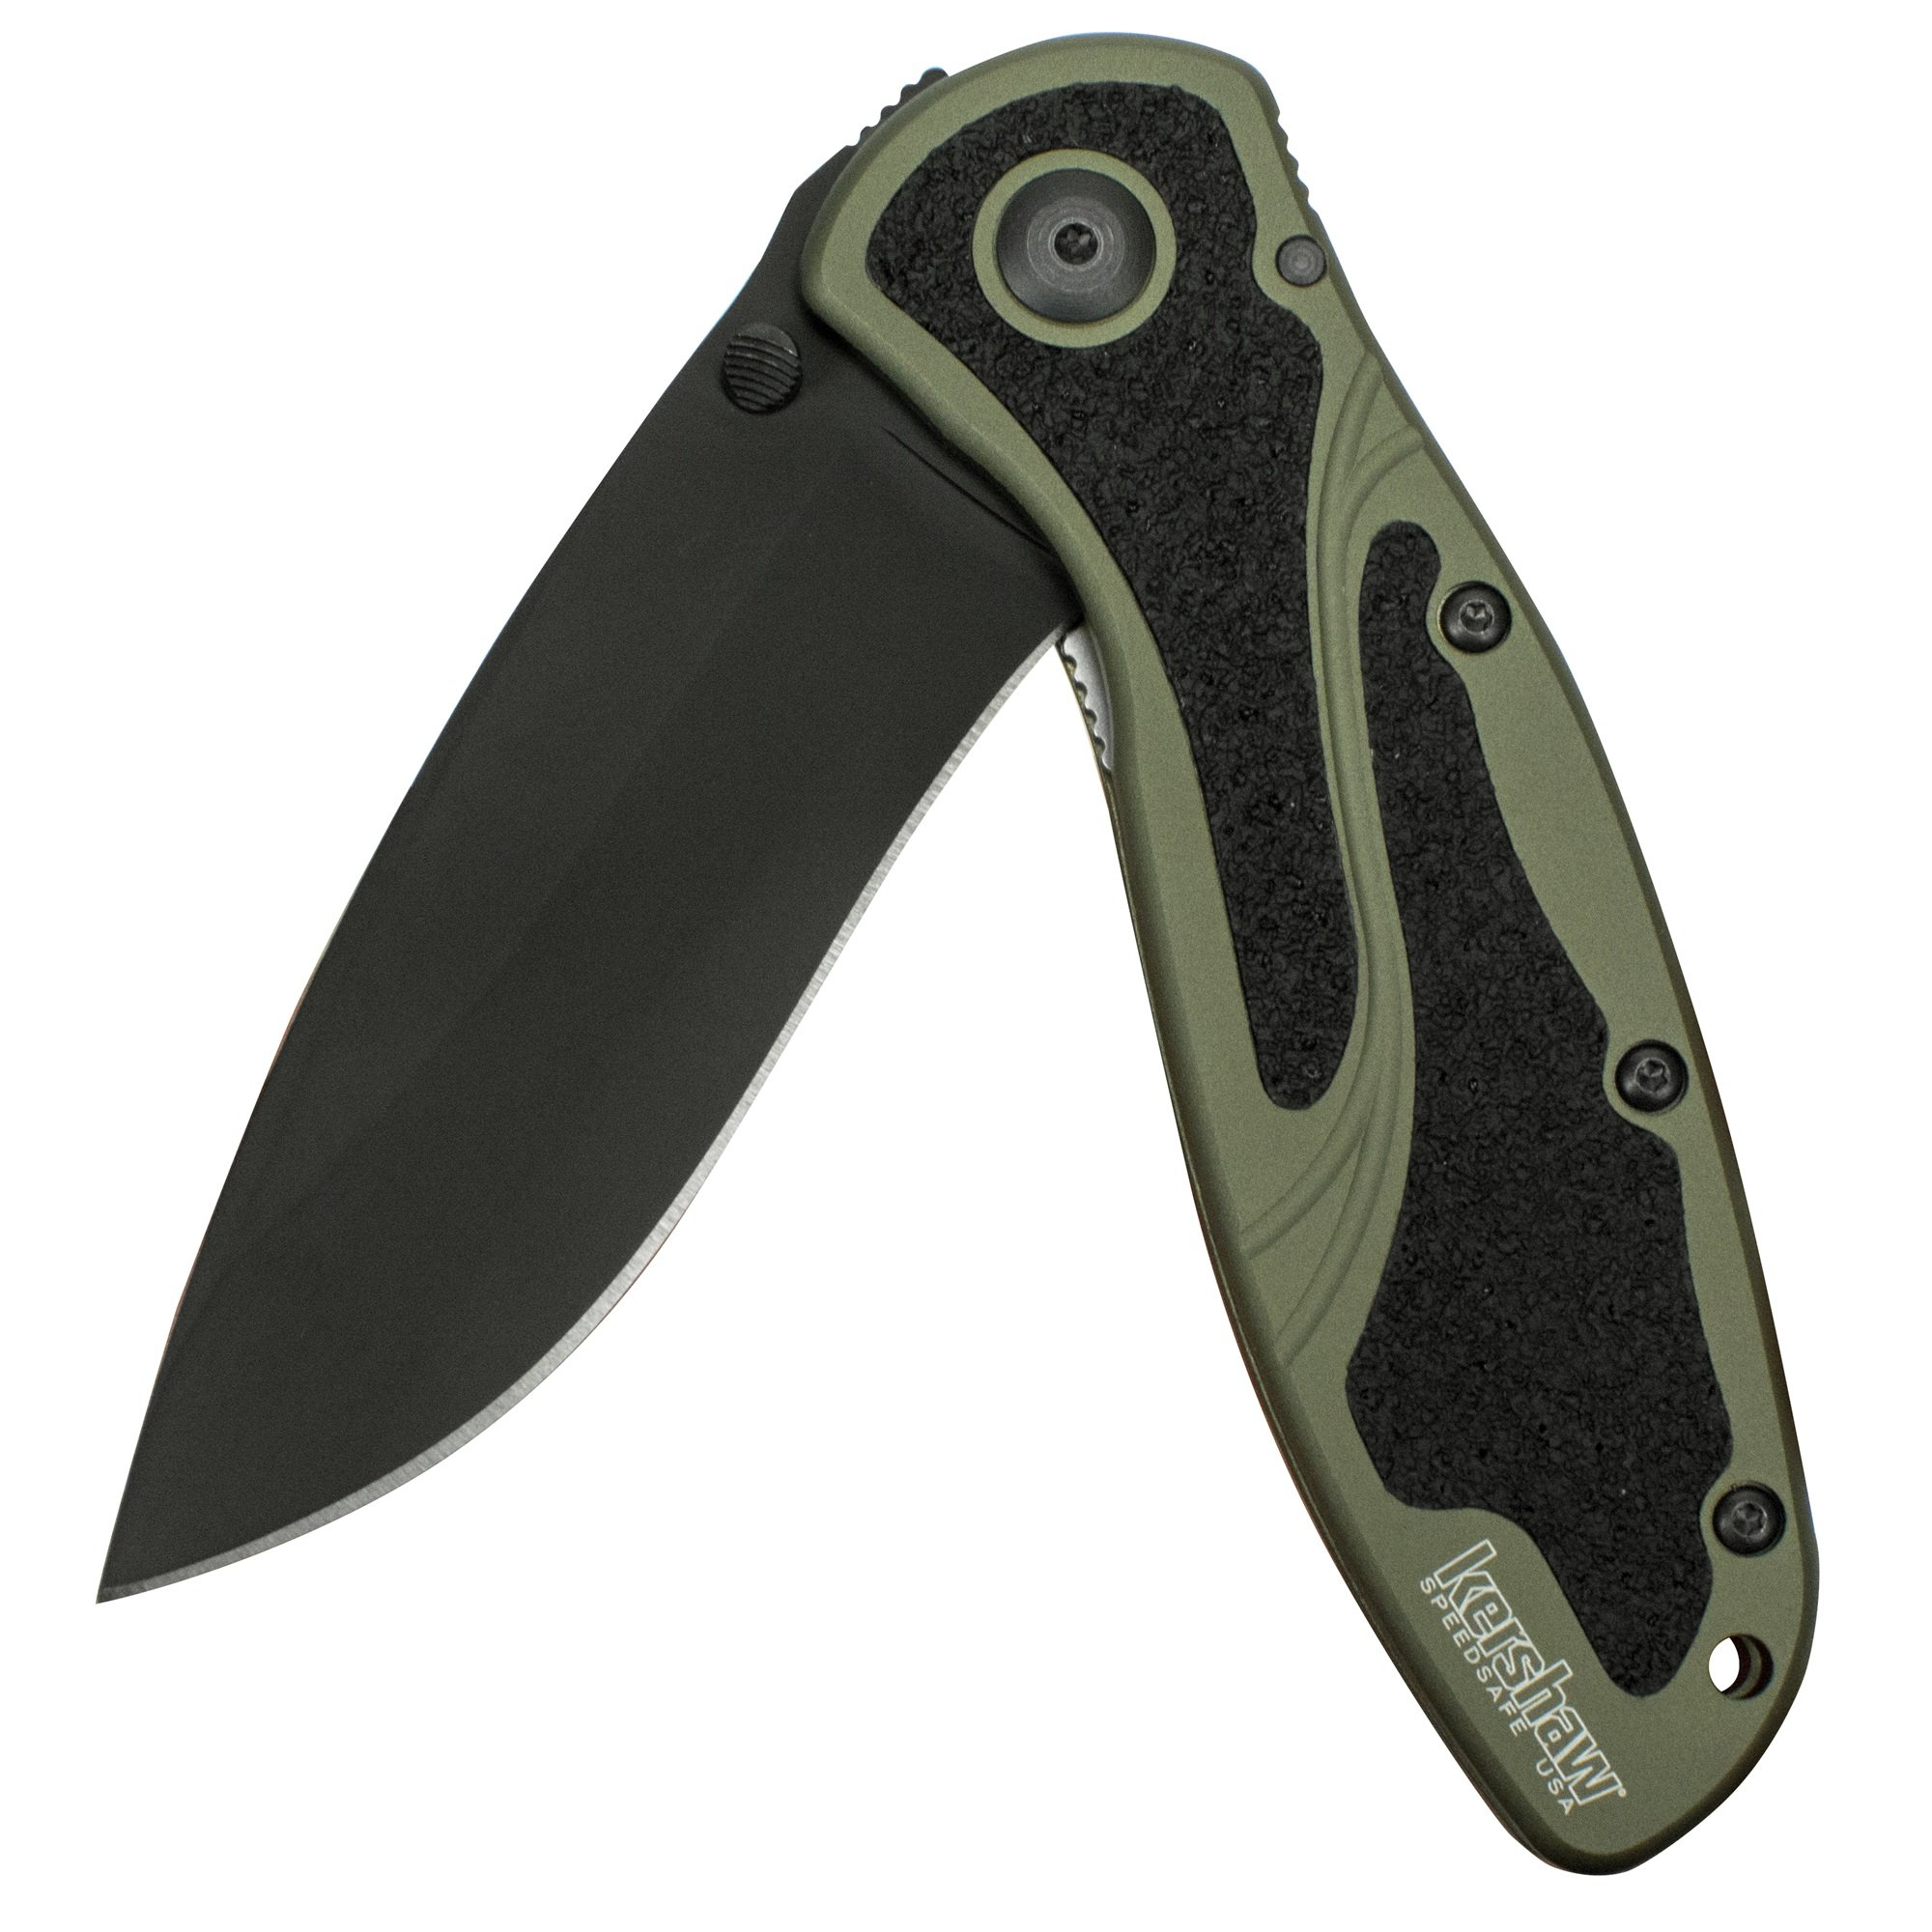 """Kershaw Blur, Olive/Black (1670OLBLK); with 3.4"""" Black DLC-Coated 14C28N Steel Blade, Olive Anodized Aluminum Handle with Black Trac-Tec Inserts, SpeedSafe Opening and Reversible Pocketclip; 3.9 OZ"""